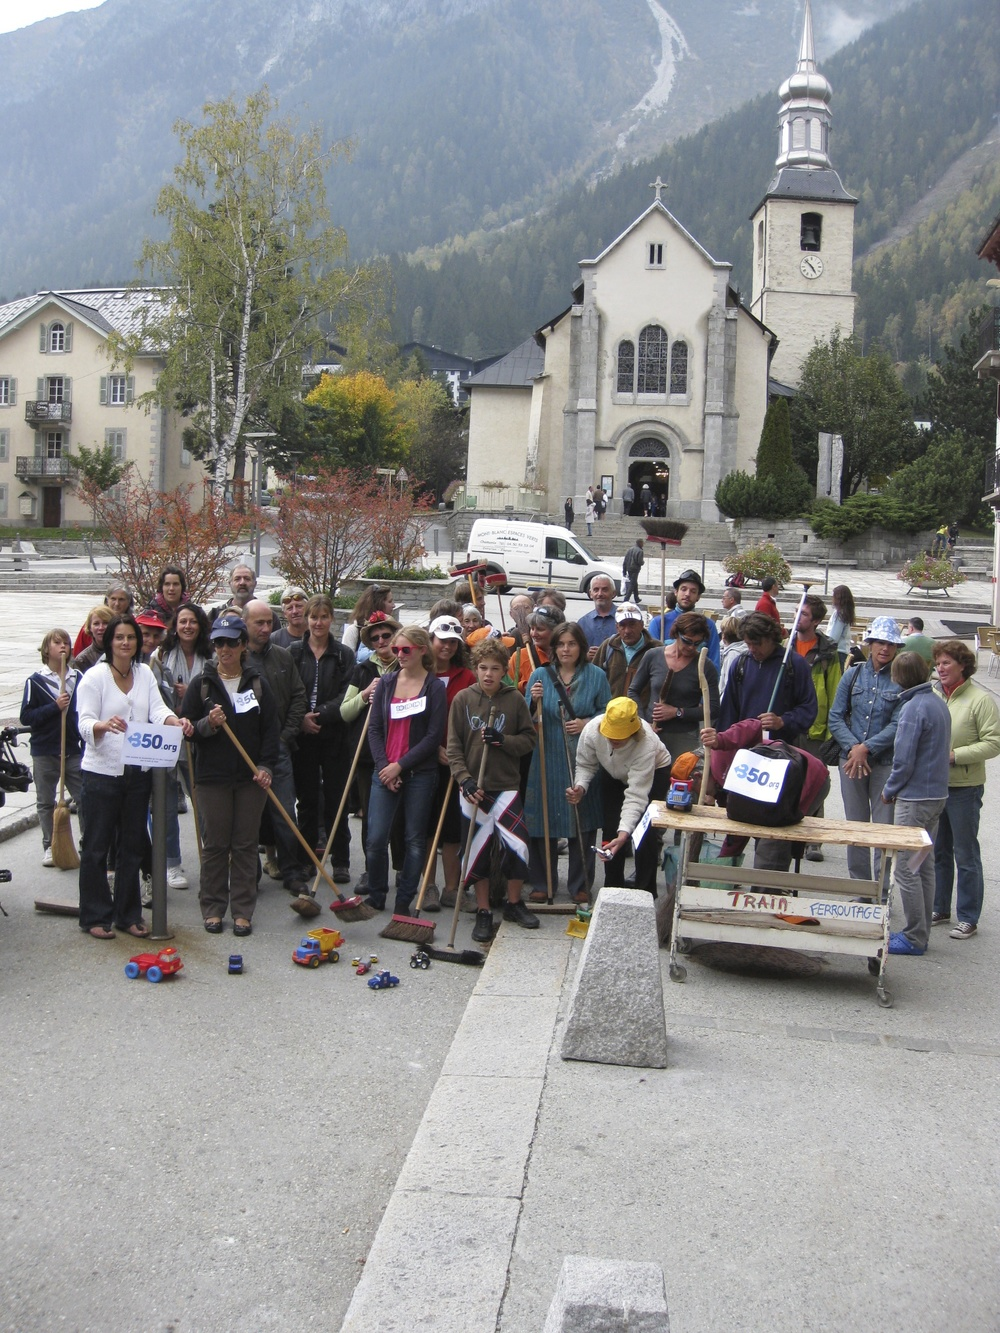 10 octobre 2010, Flash Mob, Chamonix